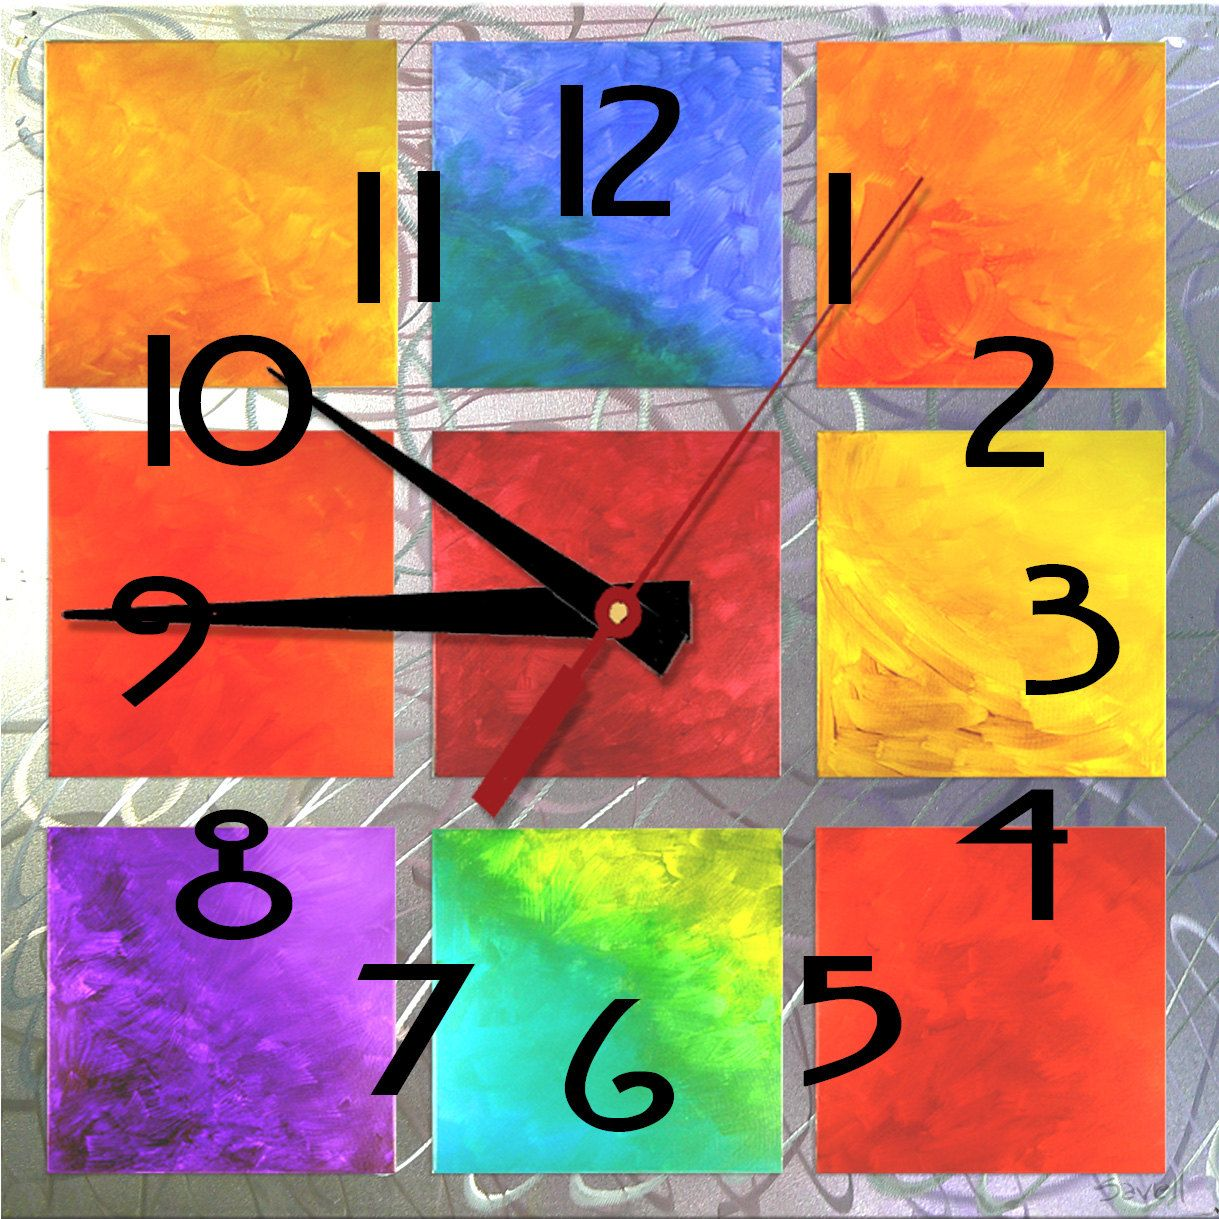 Colorful Squares Clock - Abstract Number 3 Clock 8x8 Contemporary by SavellStudioArtKlock on Etsy. $29.95